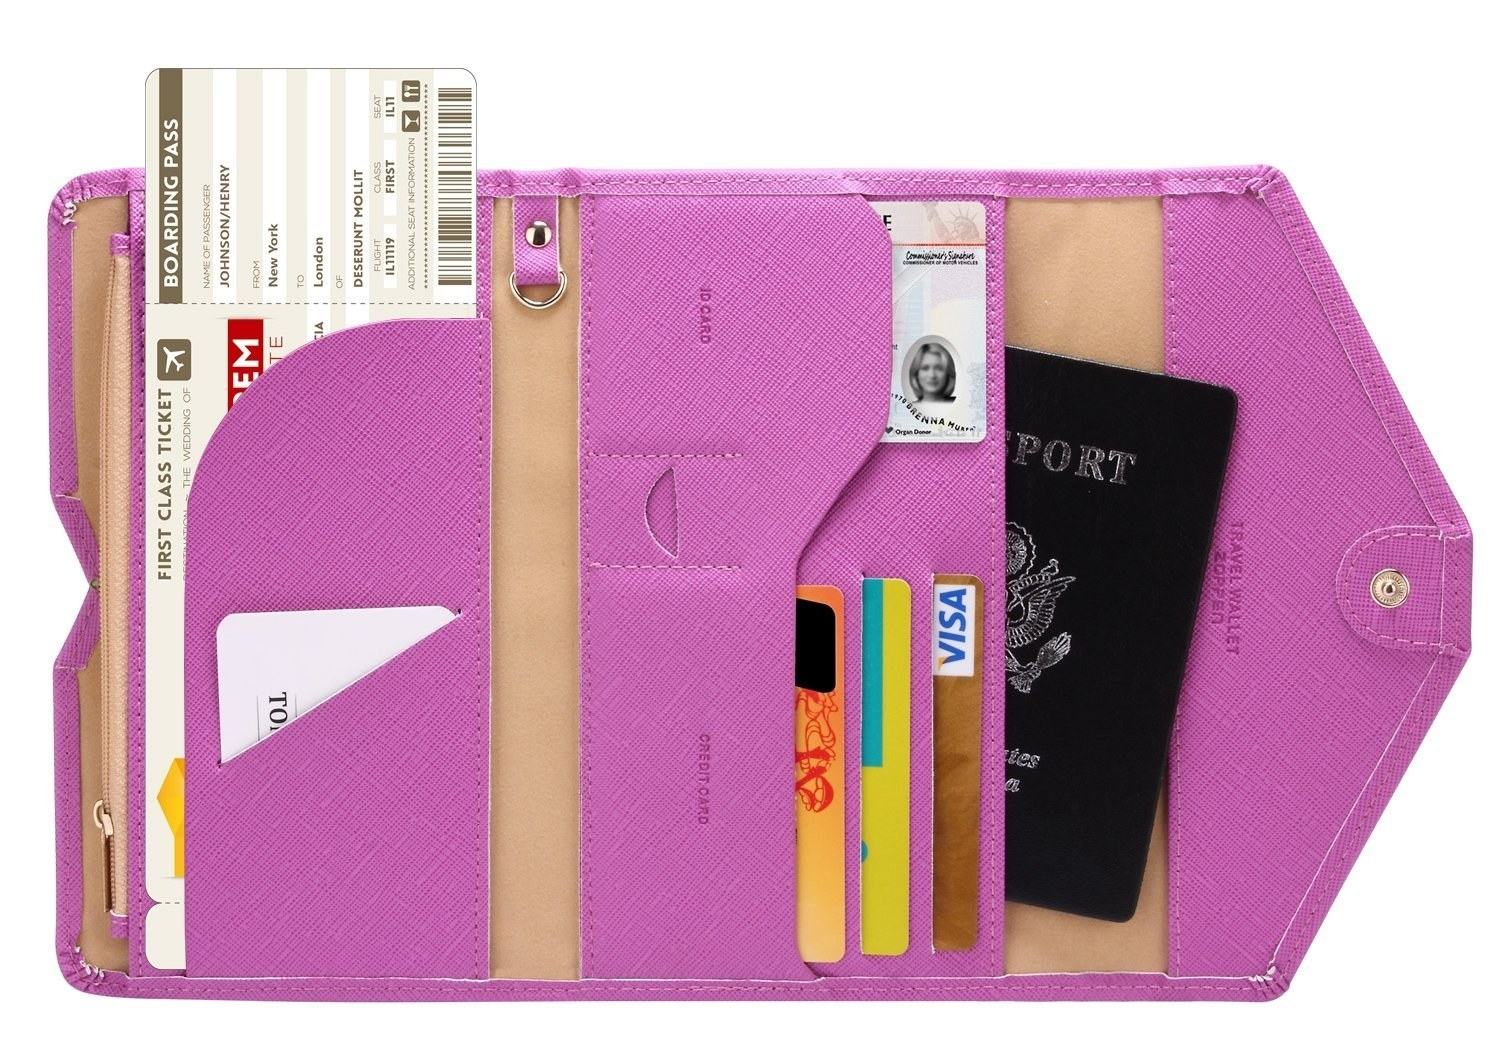 The purple wallet open to show how much it holds